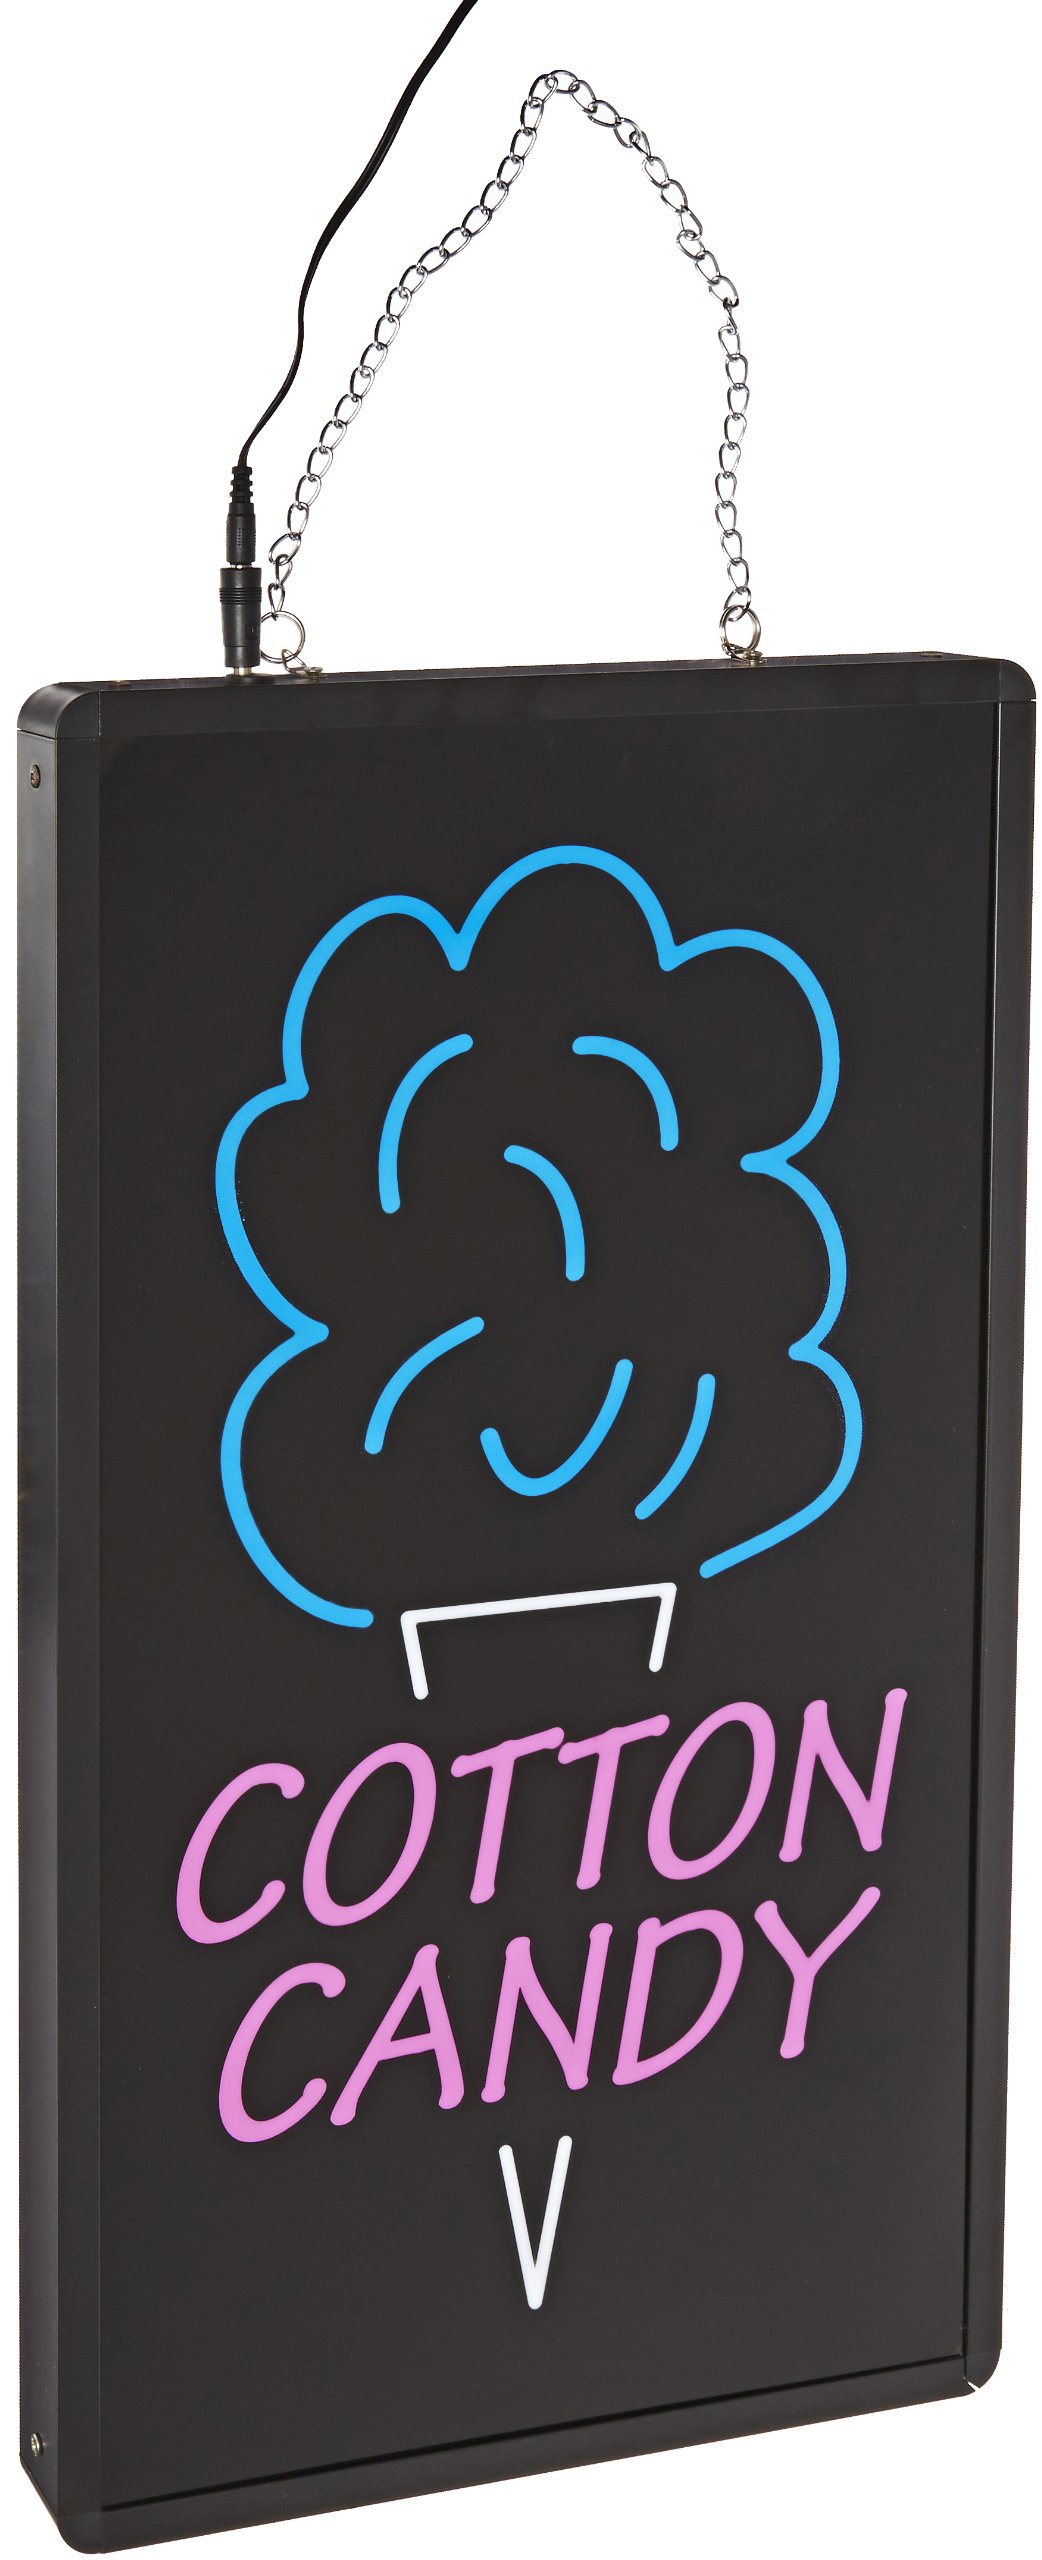 Benchmark 92005 Ultra-Bright Sign, Cotton Candy, 12'' Length x 21'' Width x 1-1/4'' Height